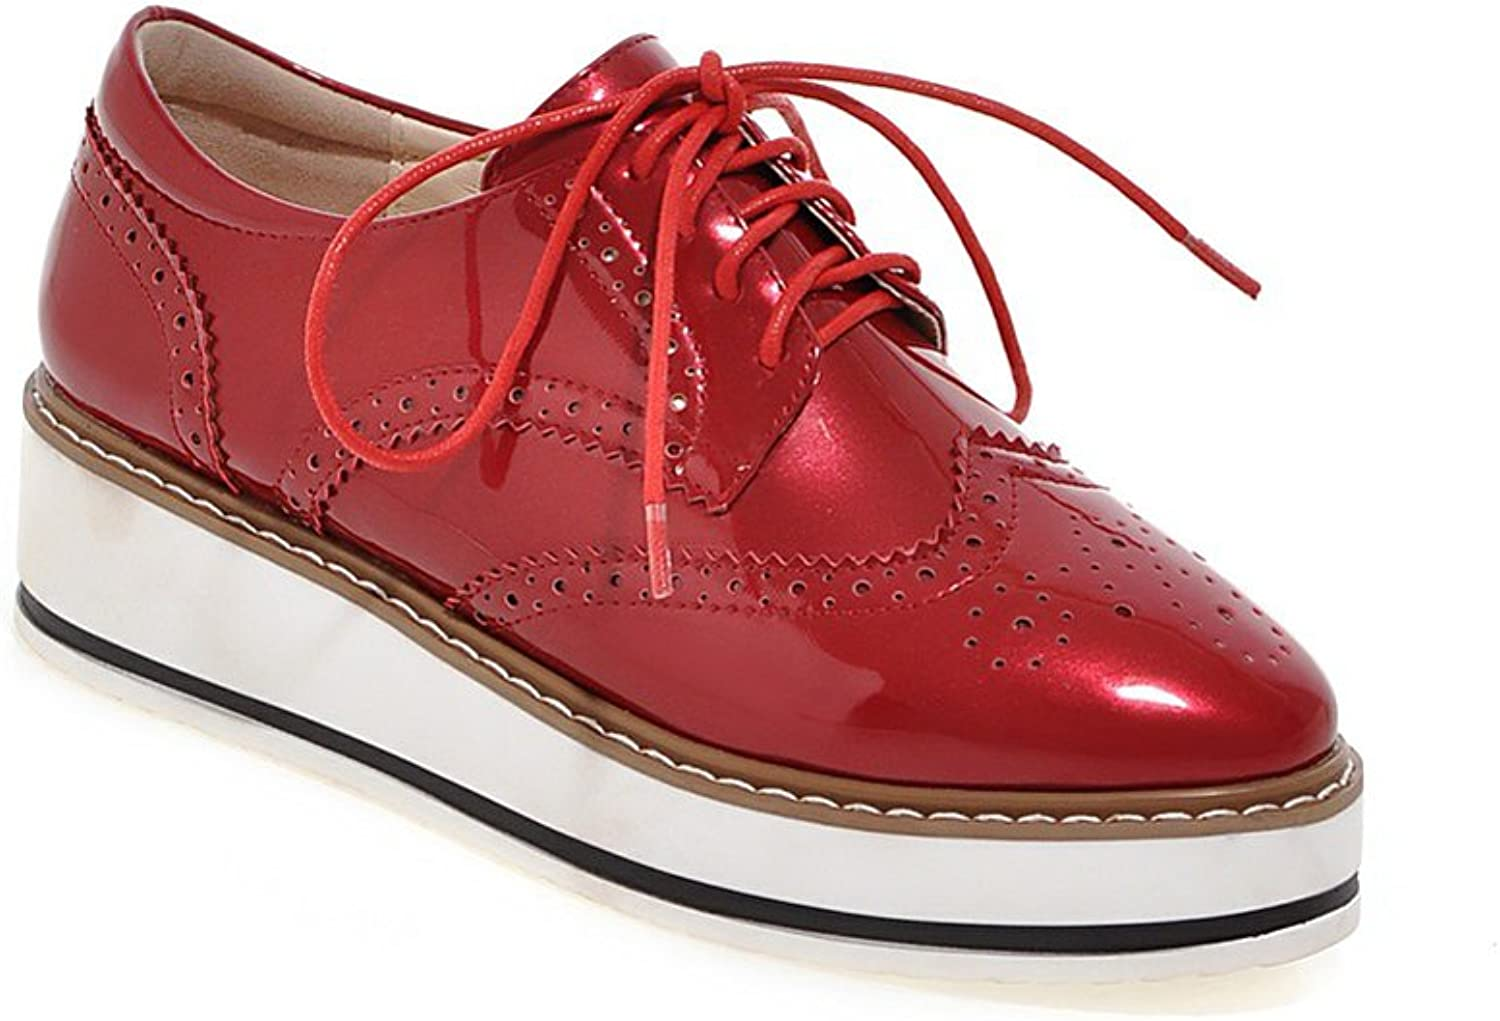 Lucksender Womens Platform Lace Up Round Toe Carve Oxford shoes